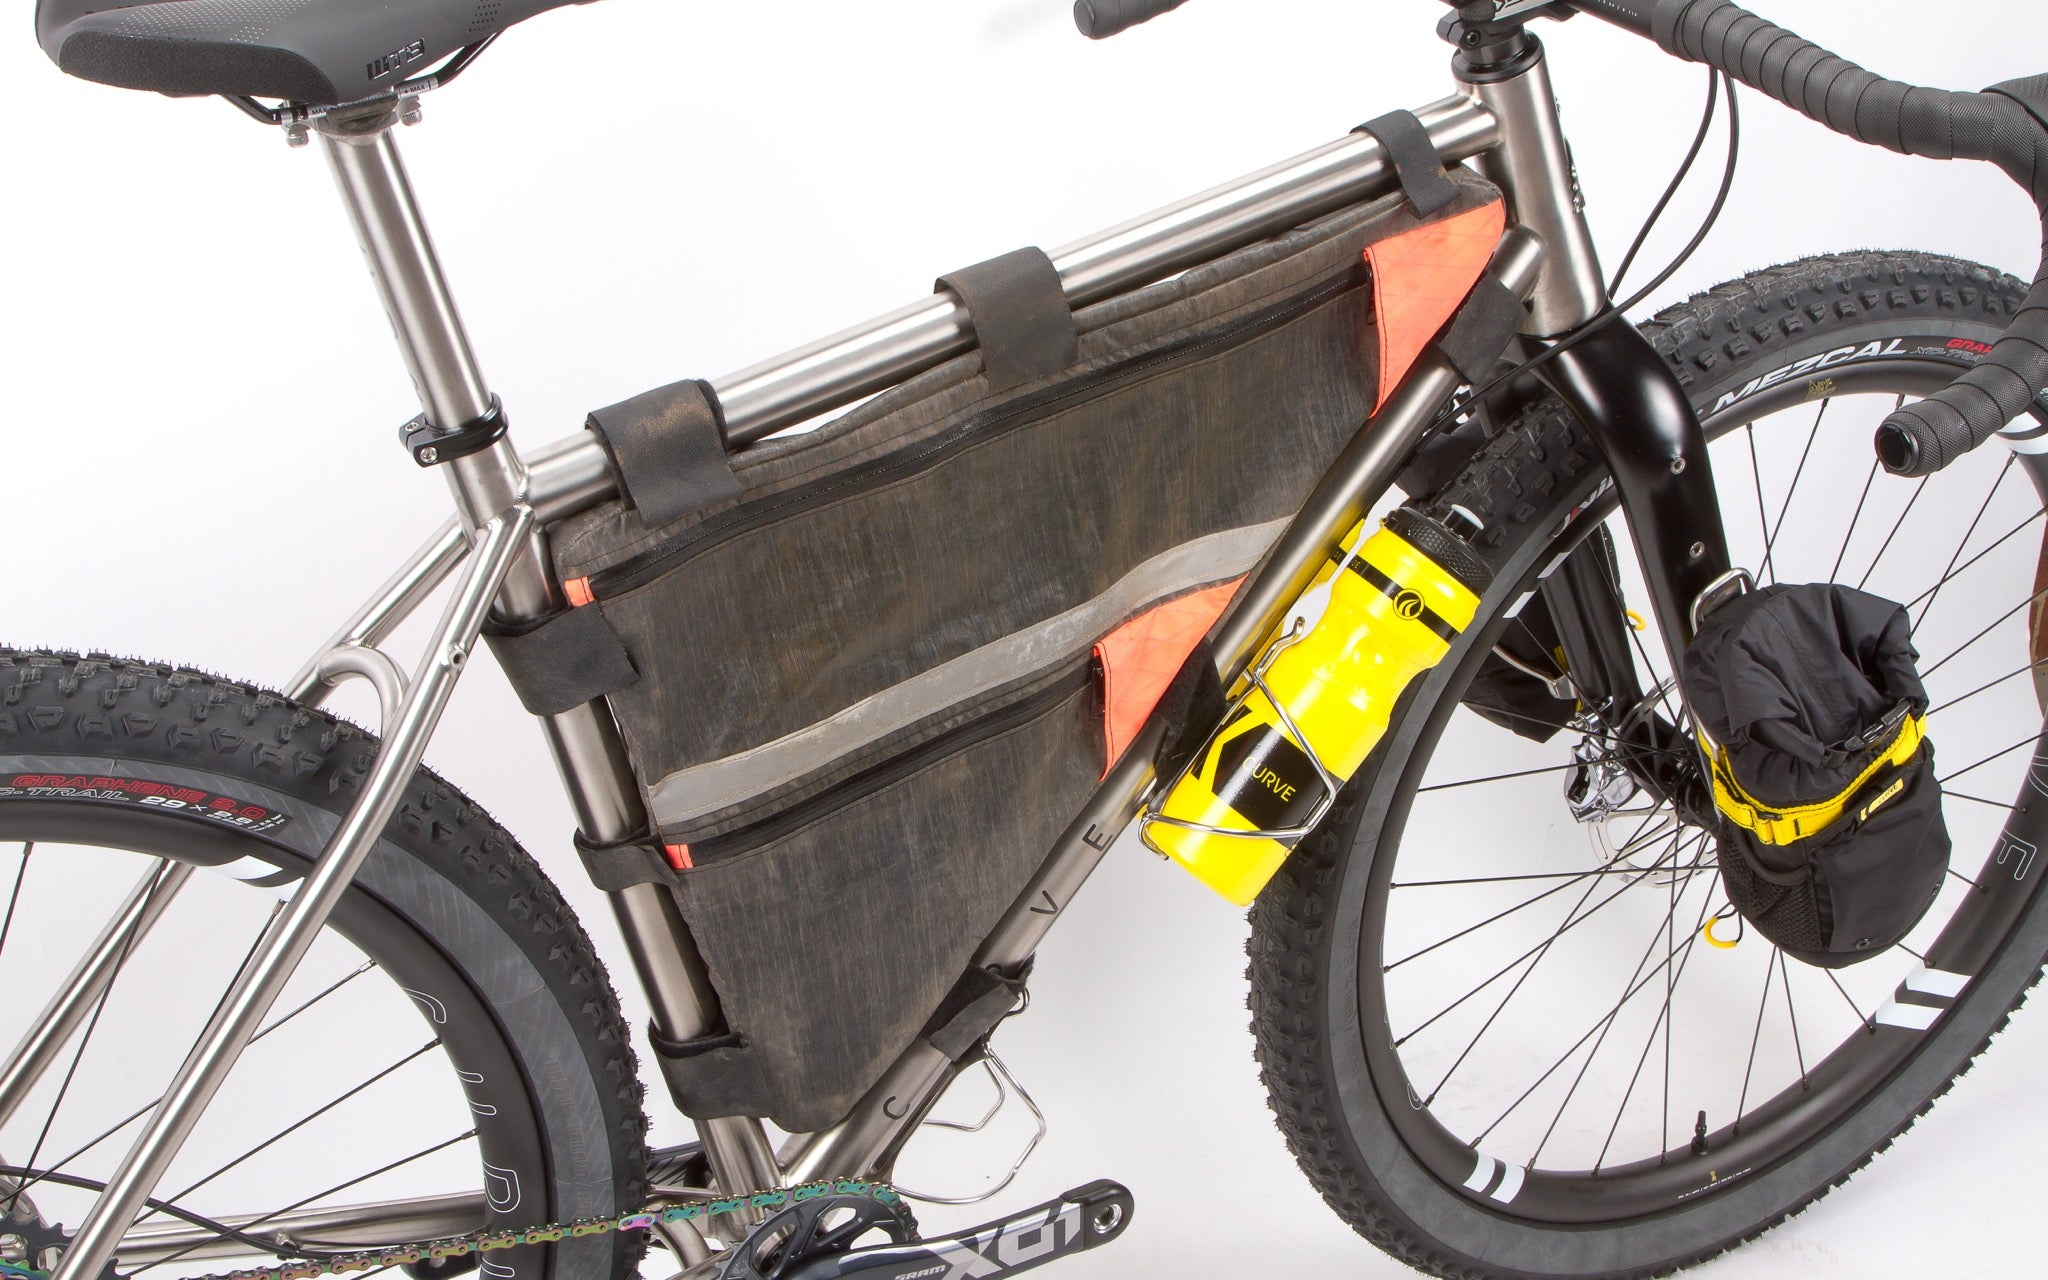 Curve GMX+ Titanium bikepacking bags loaded